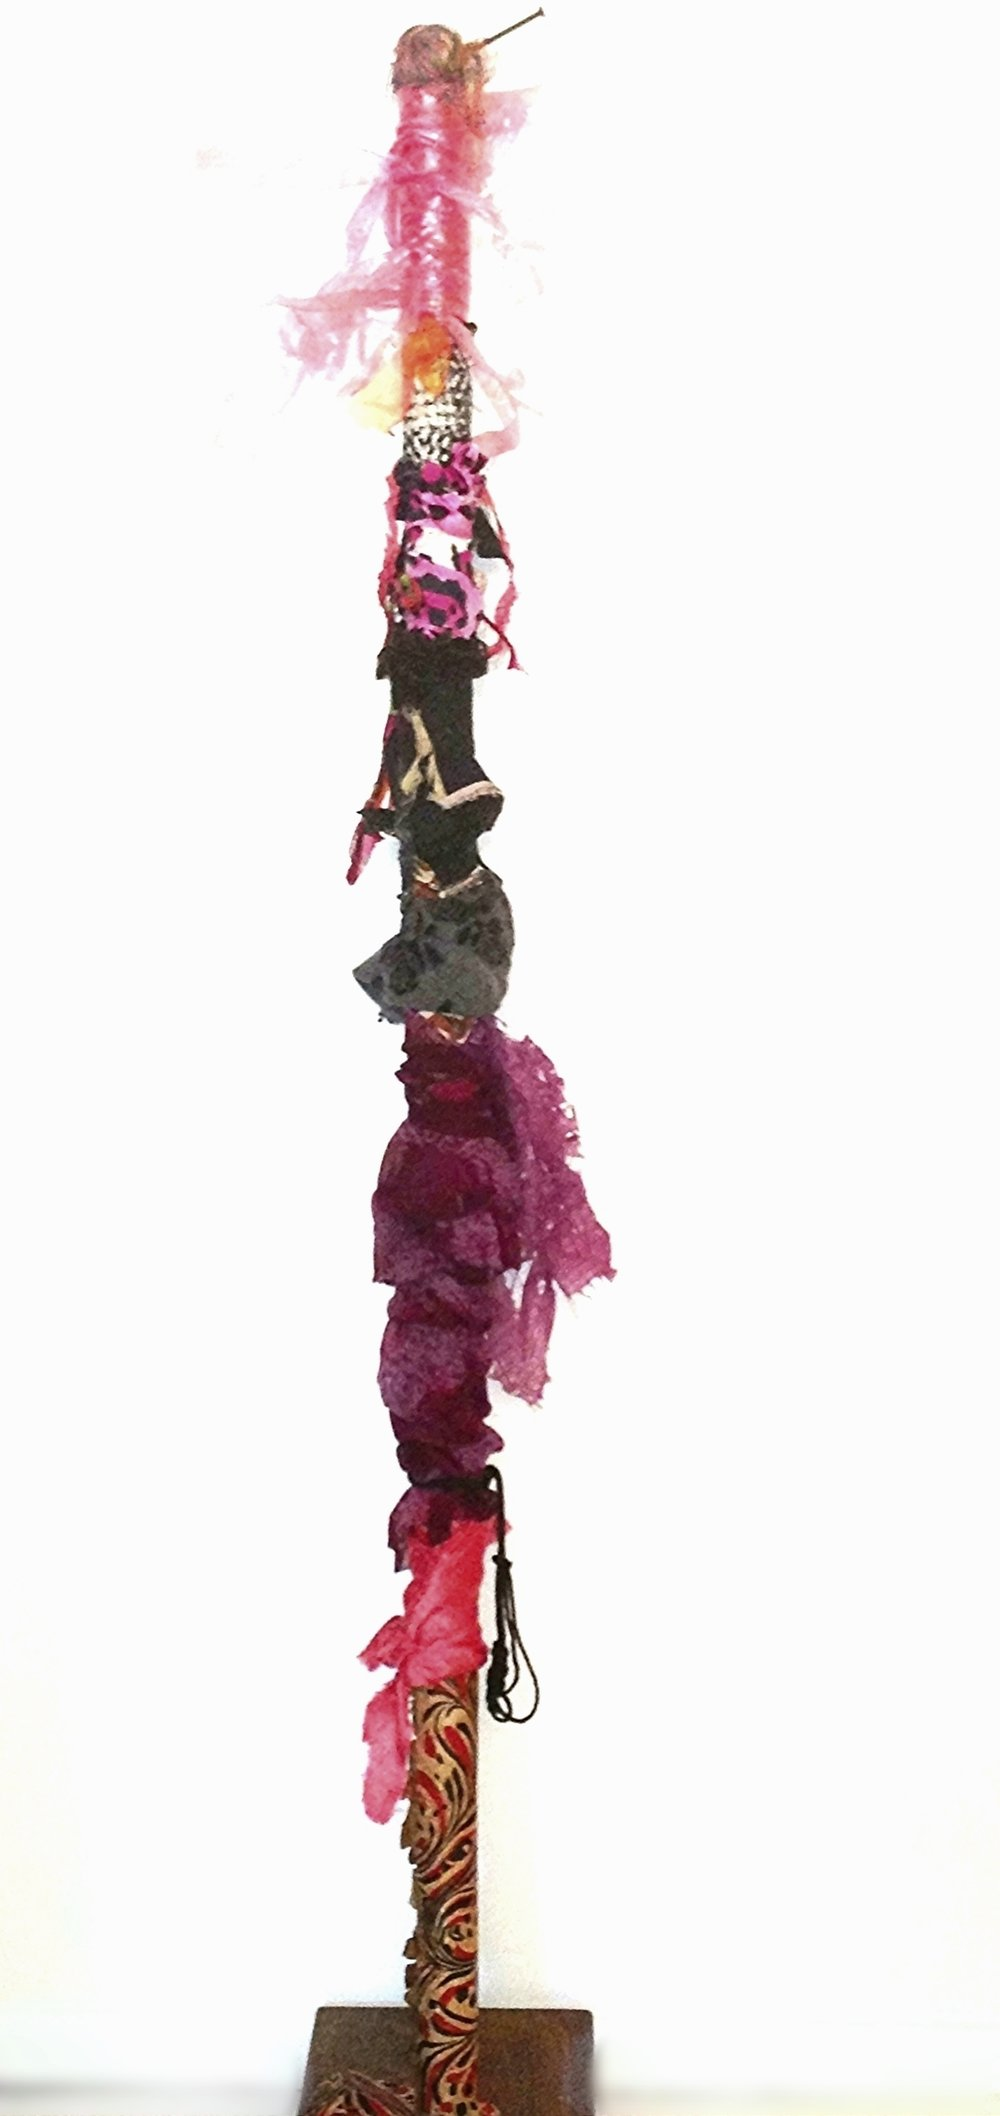 """Wedding Dancer   Recycled textile, Japanese cellophane, rust, vintage thread spool, acrylic, paper, yarn, ribbon, cord, on industrial cardboard tube  57 x 12"""" round  2015-2018"""